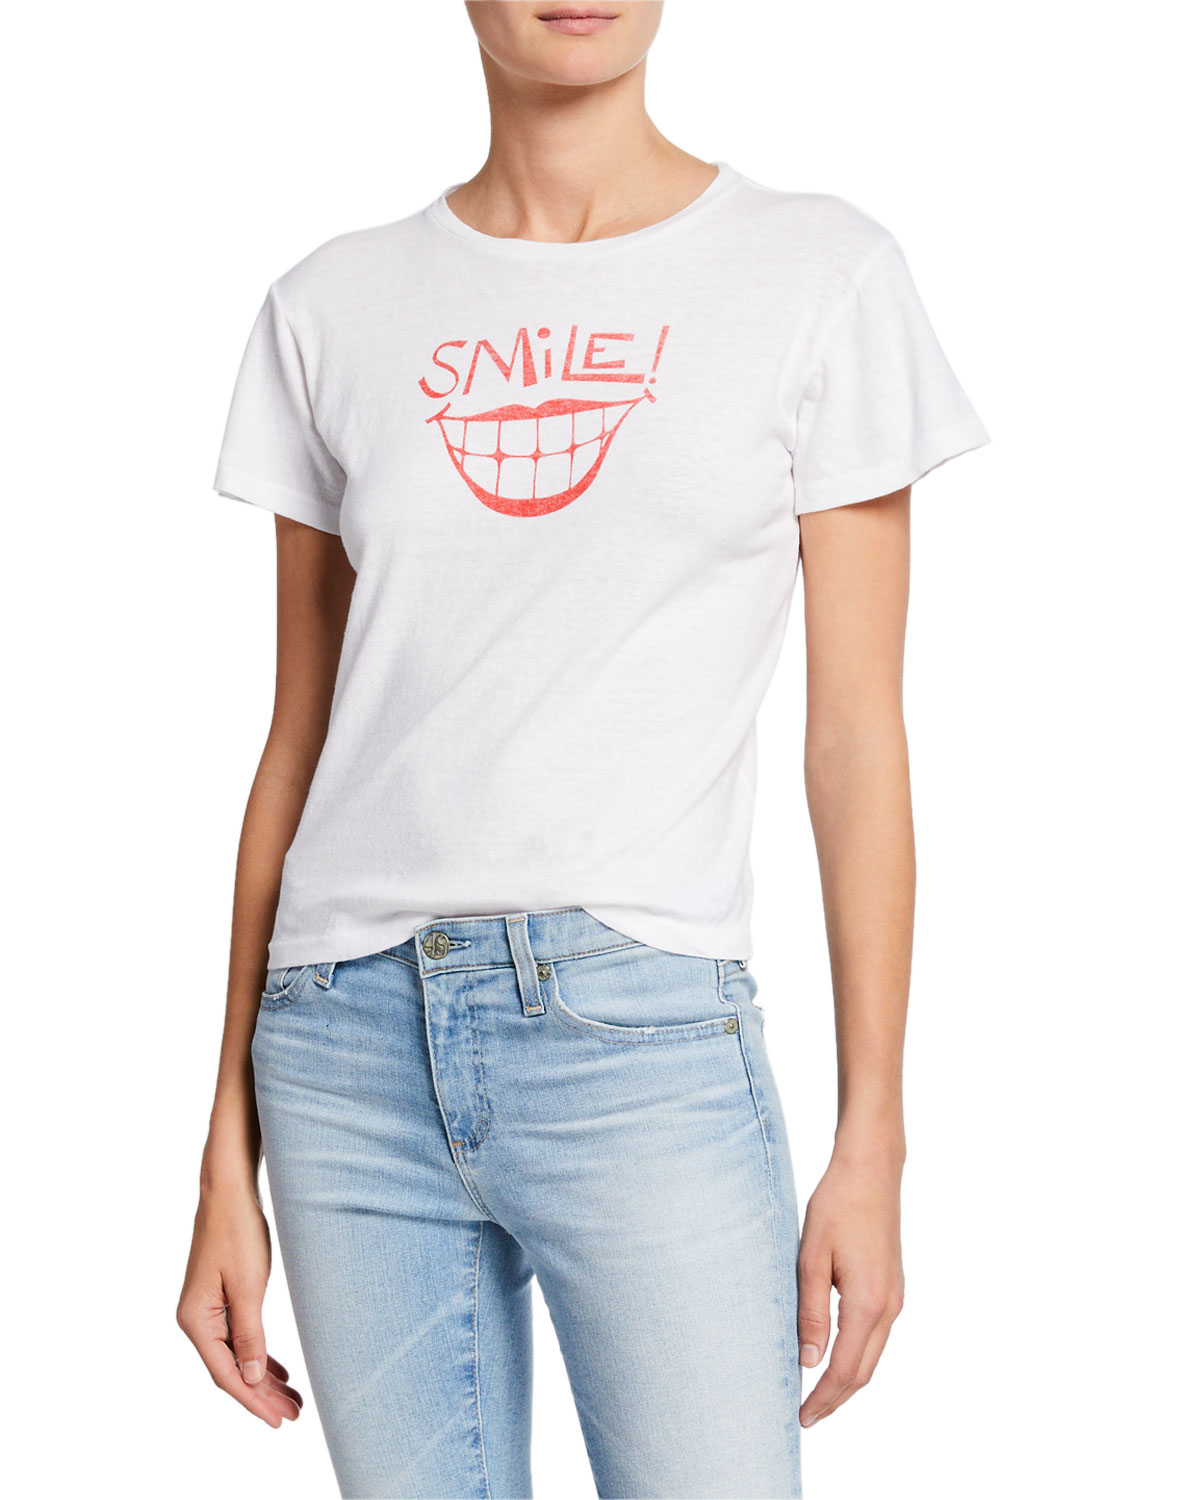 Classic Tee With Smile Graphic in White/Black